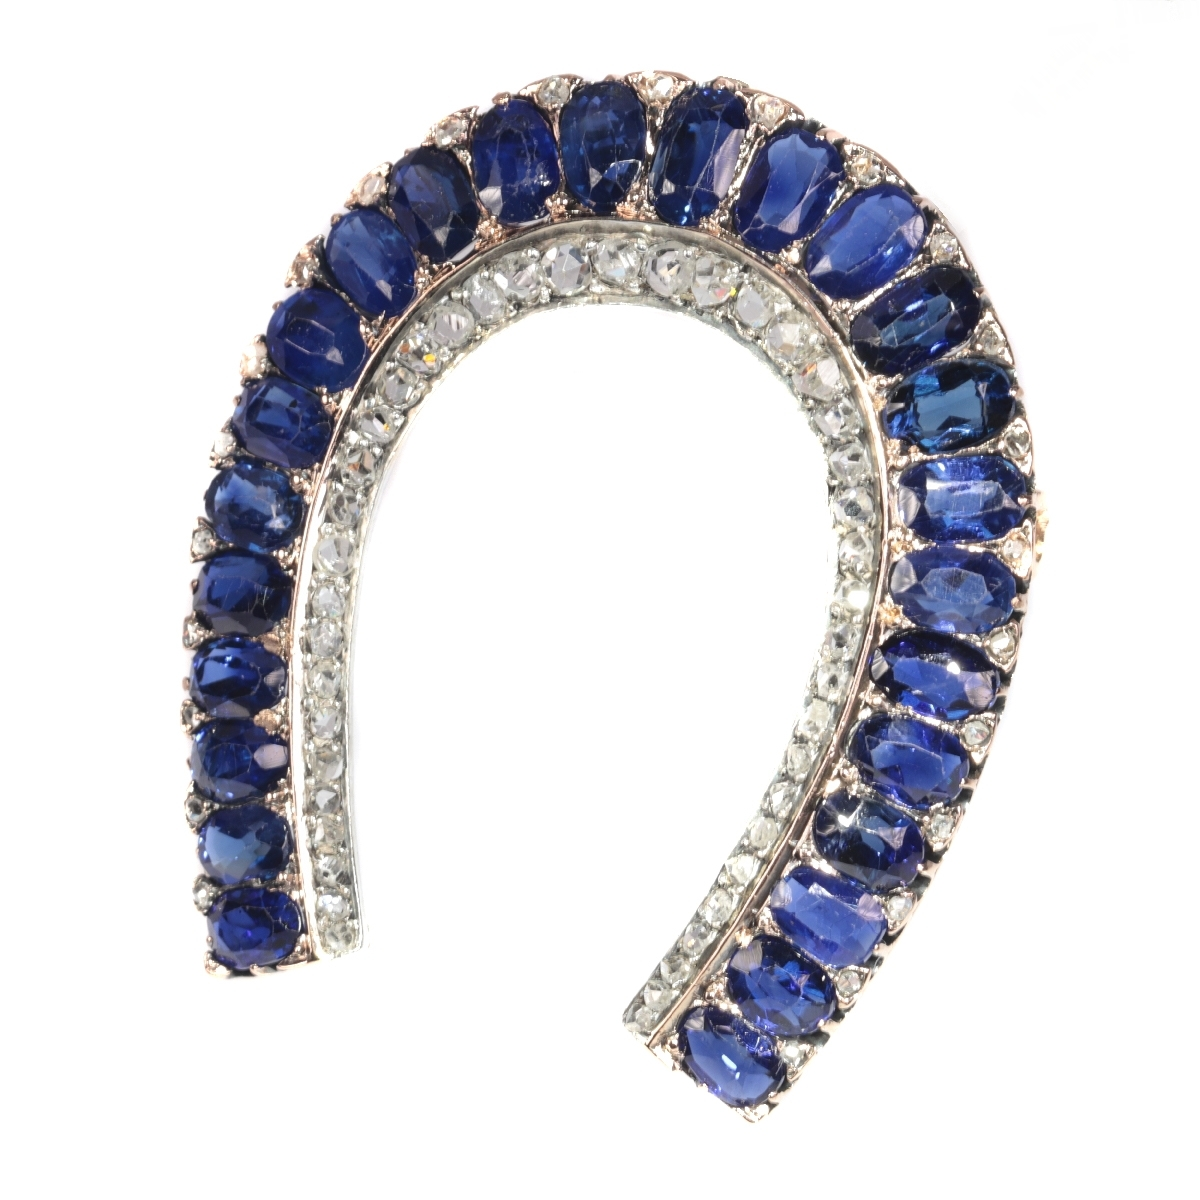 Antique Victorian brooch horse shoe with 67 diamonds and over 11 crts sapphires